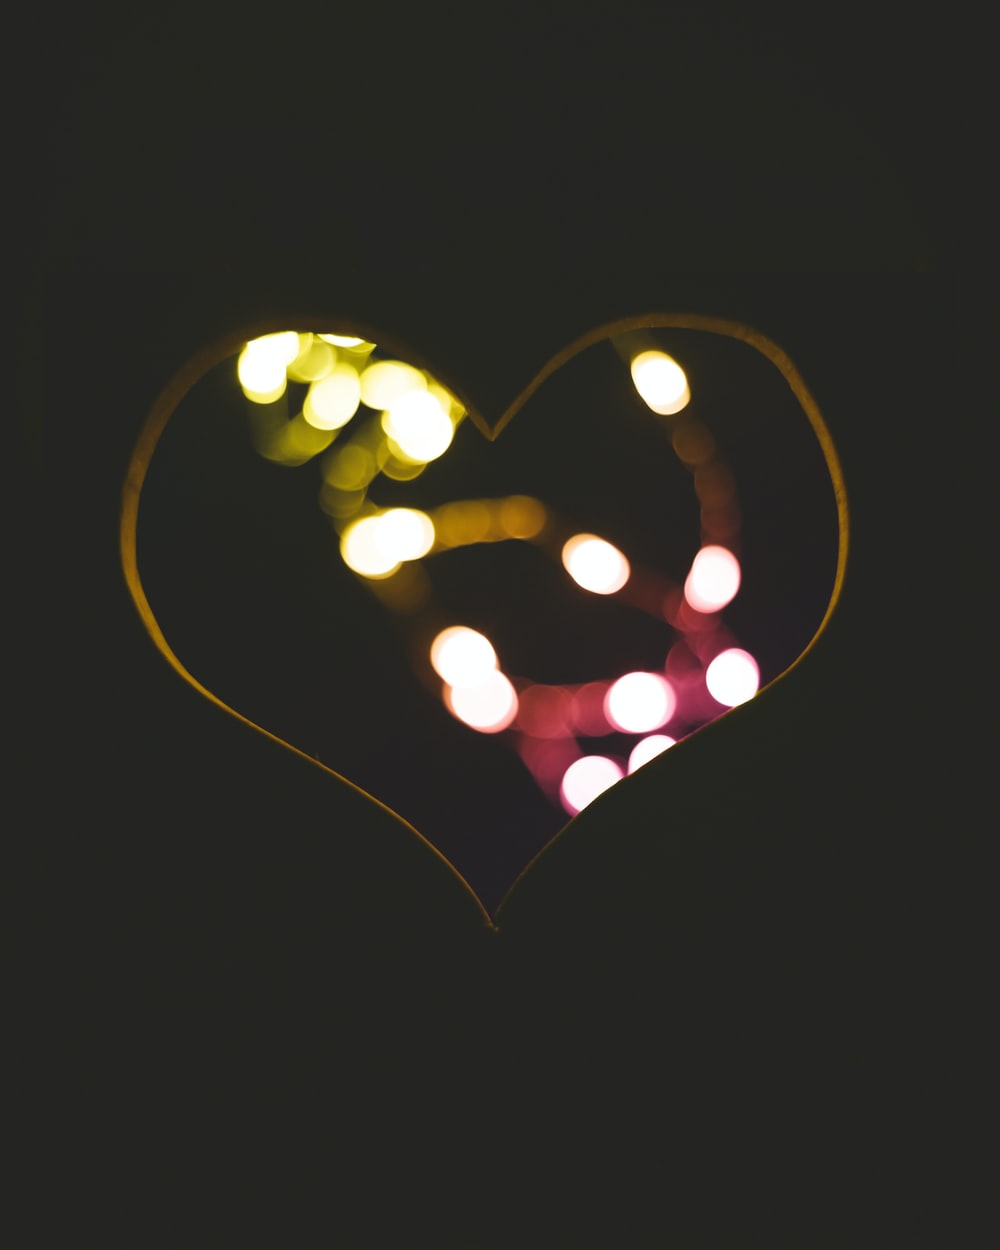 Black Heart Wallpaper Photo Free Light Image On Unsplash